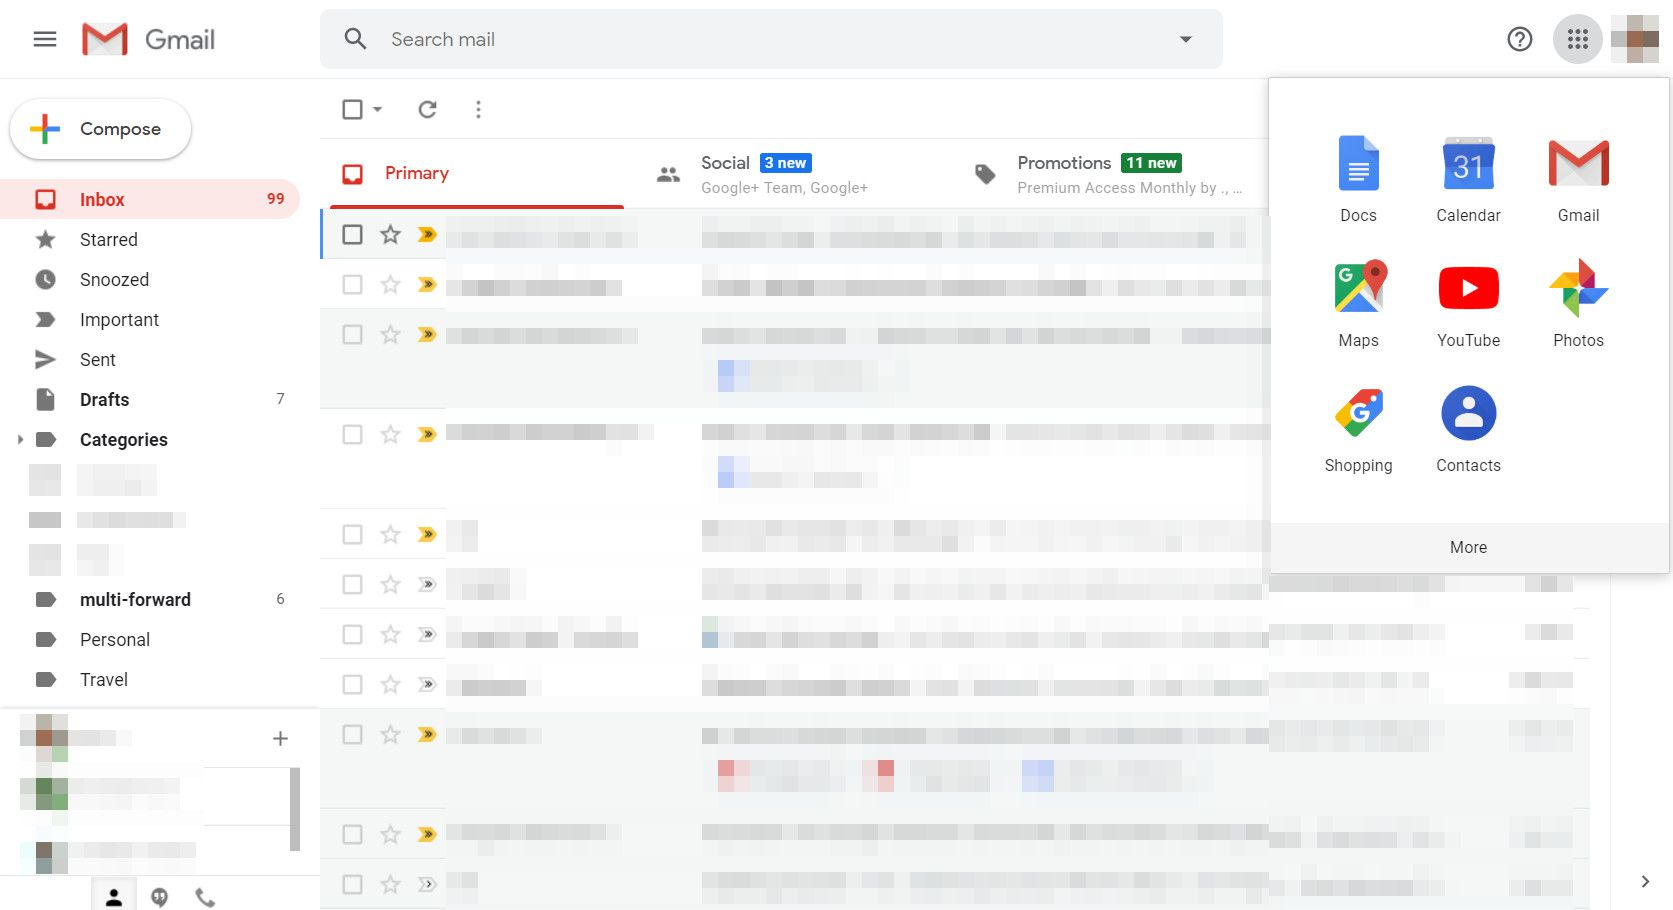 How to Restore Your Gmail Contacts to a Previous State